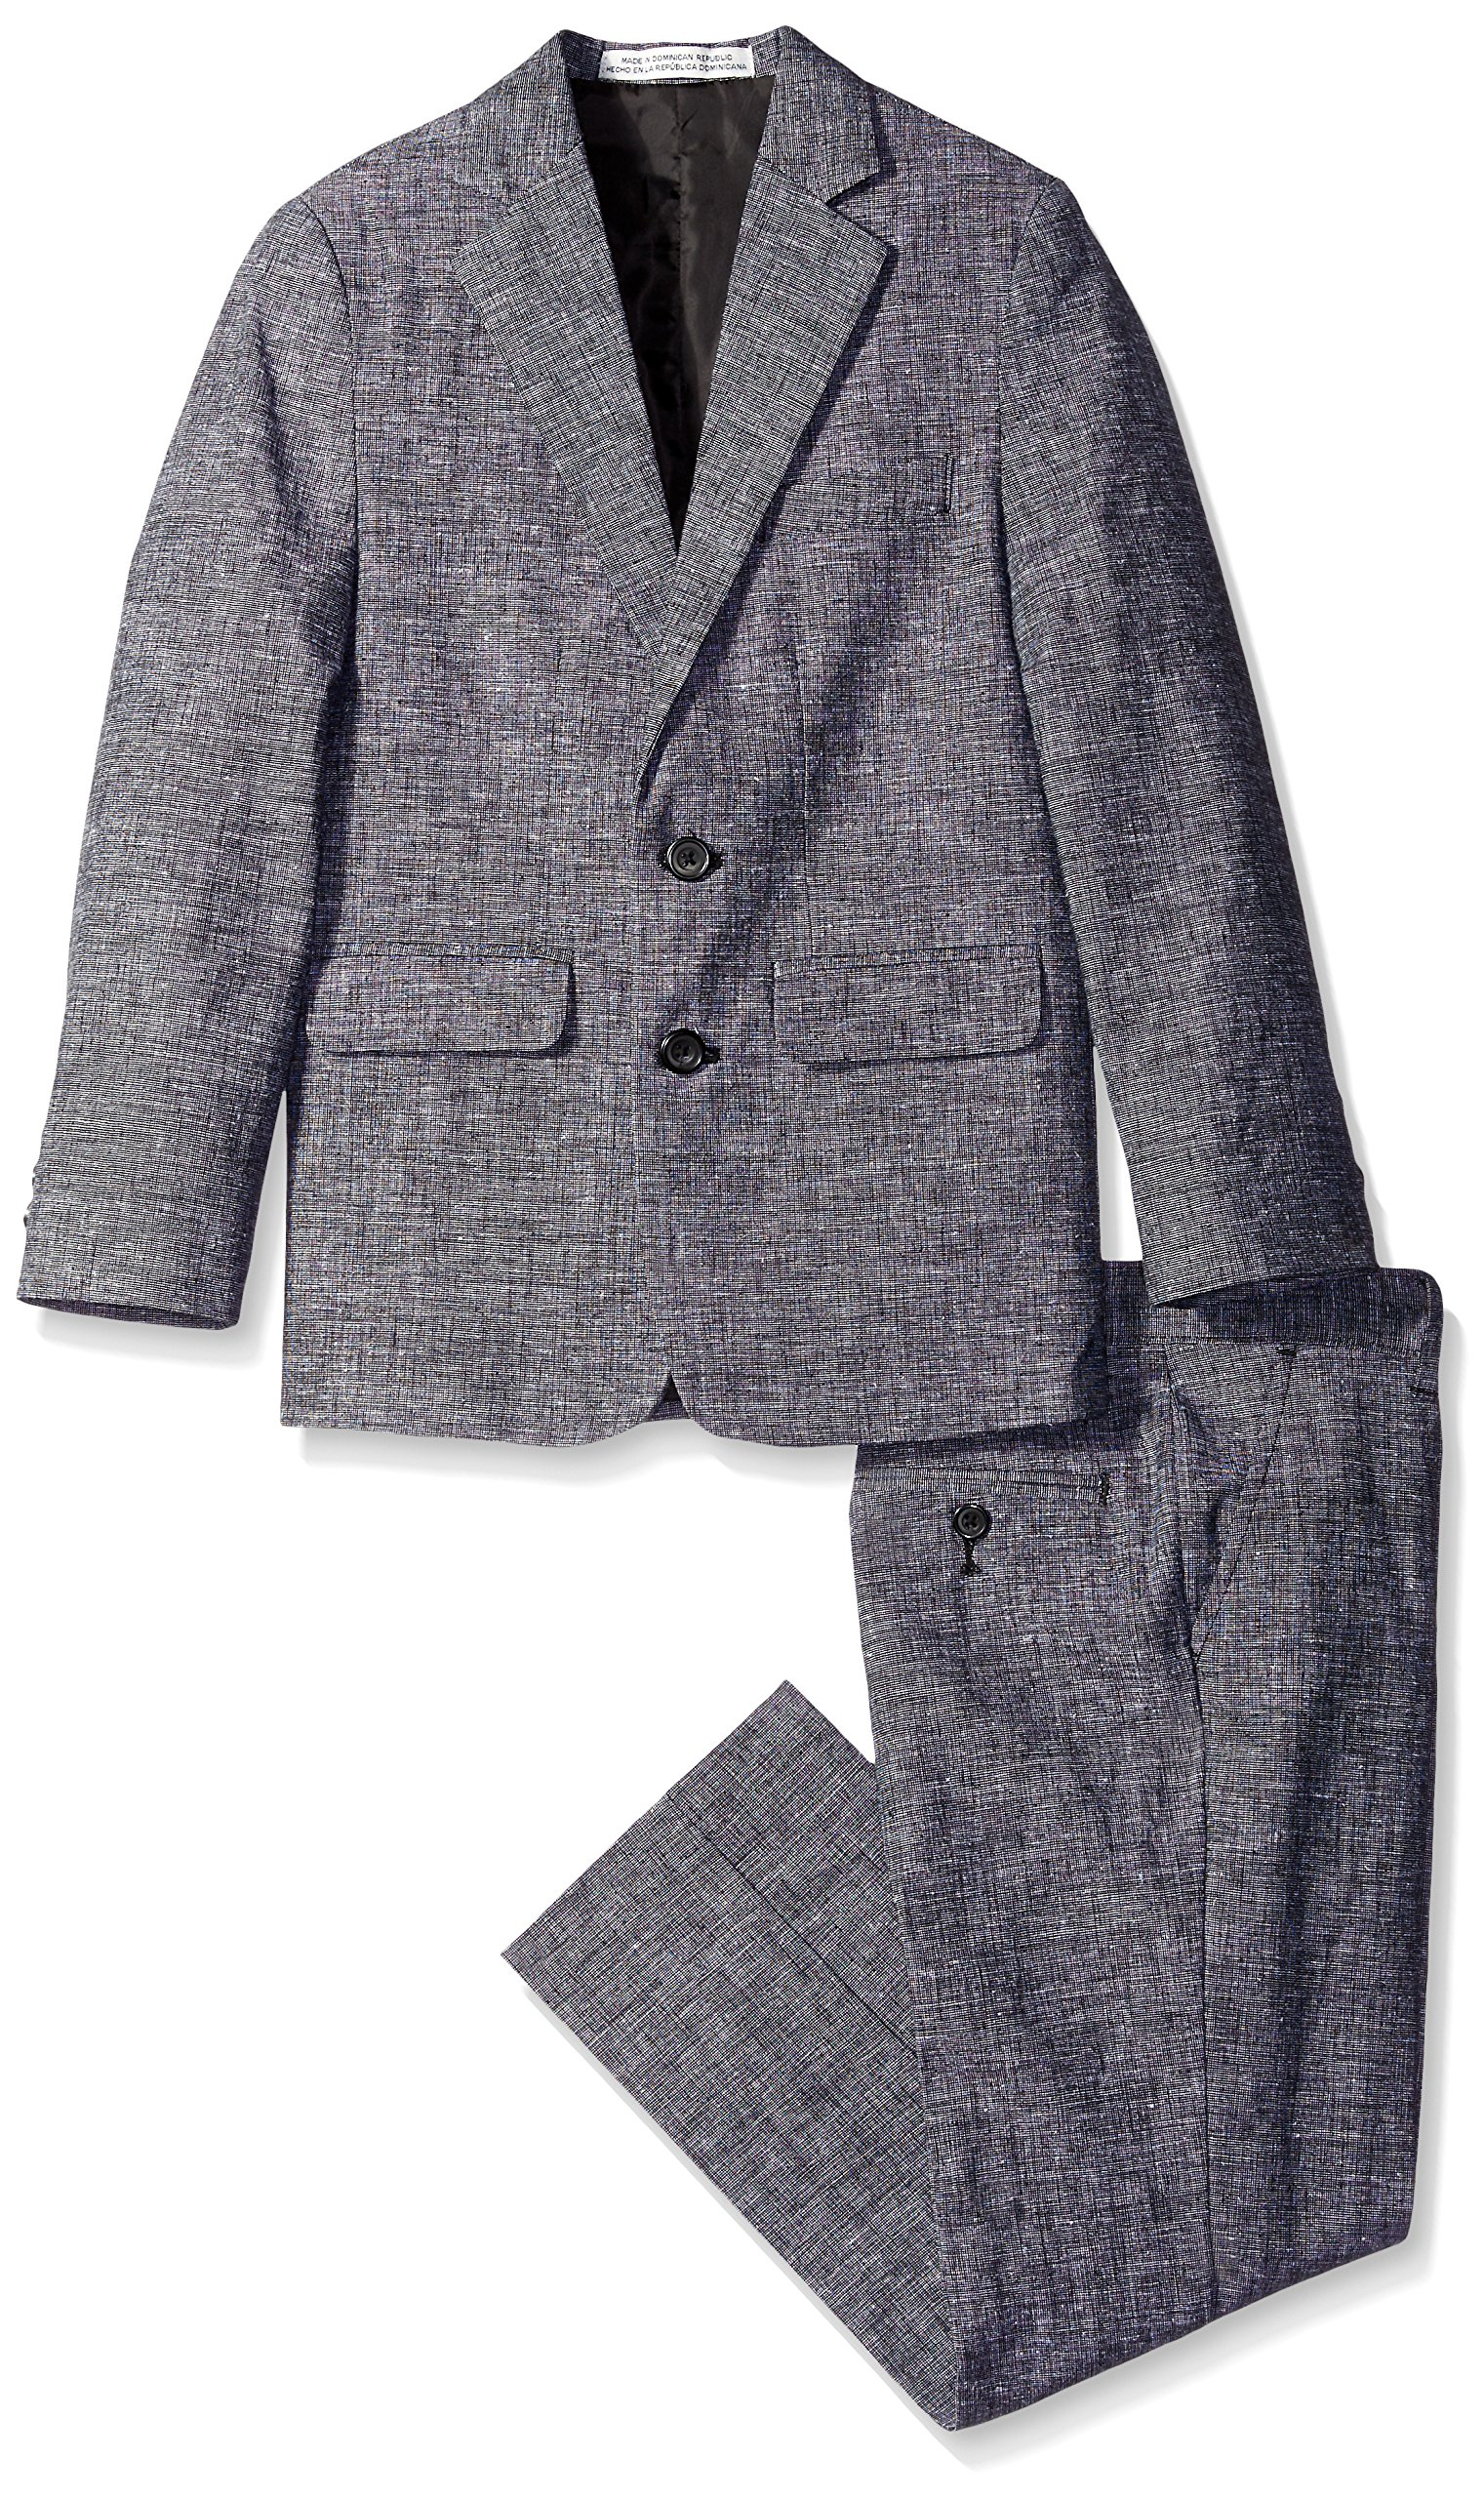 Perry Ellis Big Boys' Tickweave Suit, Black, 16 by Perry Ellis (Image #1)